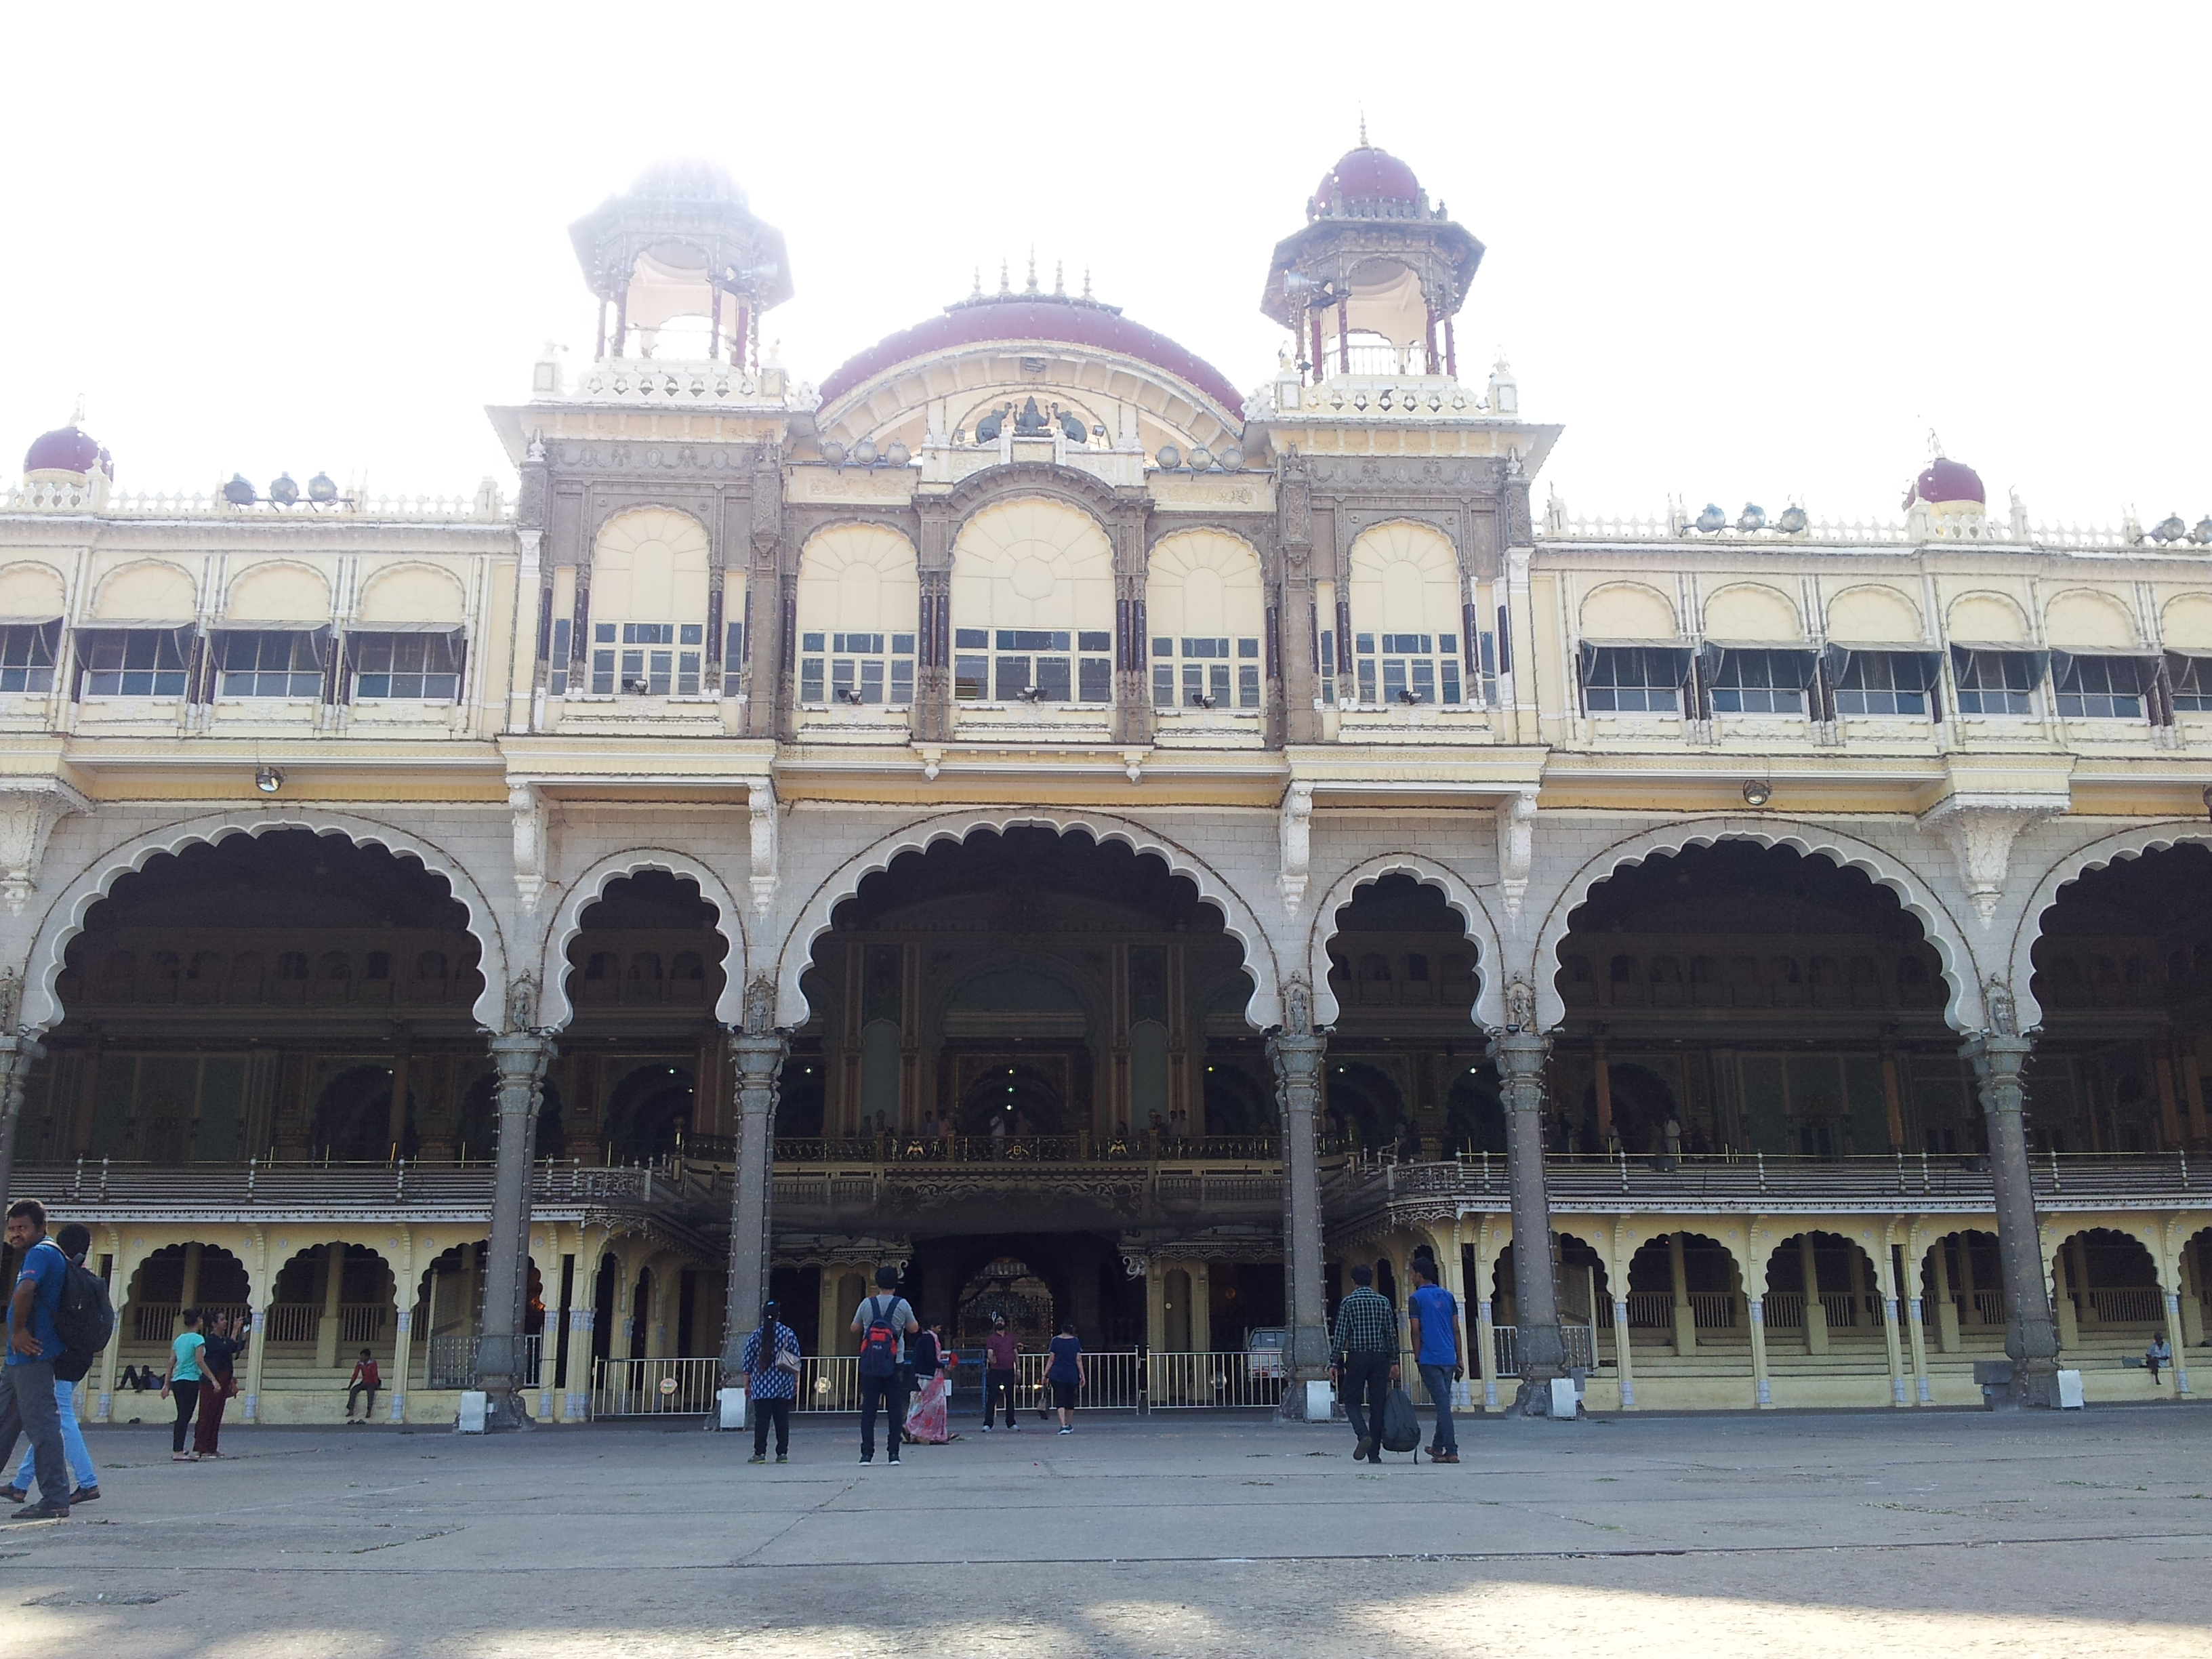 Up close outside view of Durbar Hall